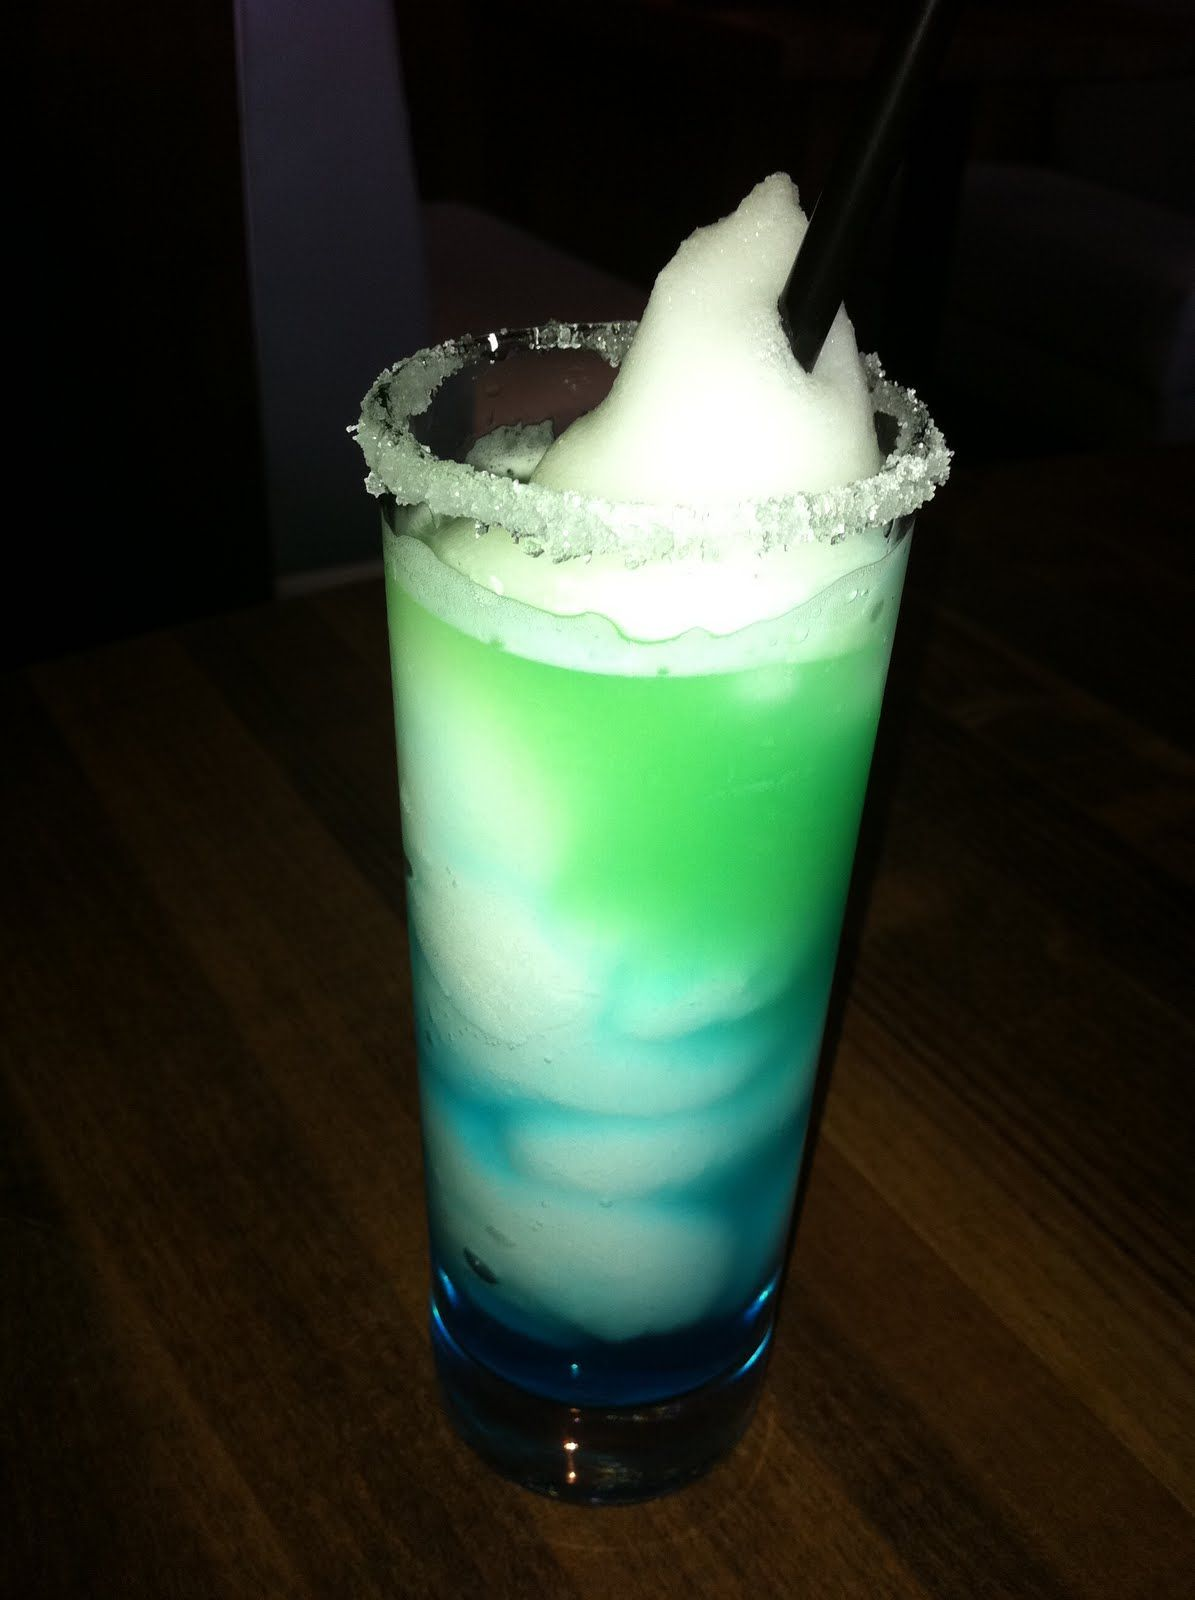 Blue apron hawaii - Hawaiian Honey Margarita Recipe Tried This At Moxie S And Fell In Loveee With It